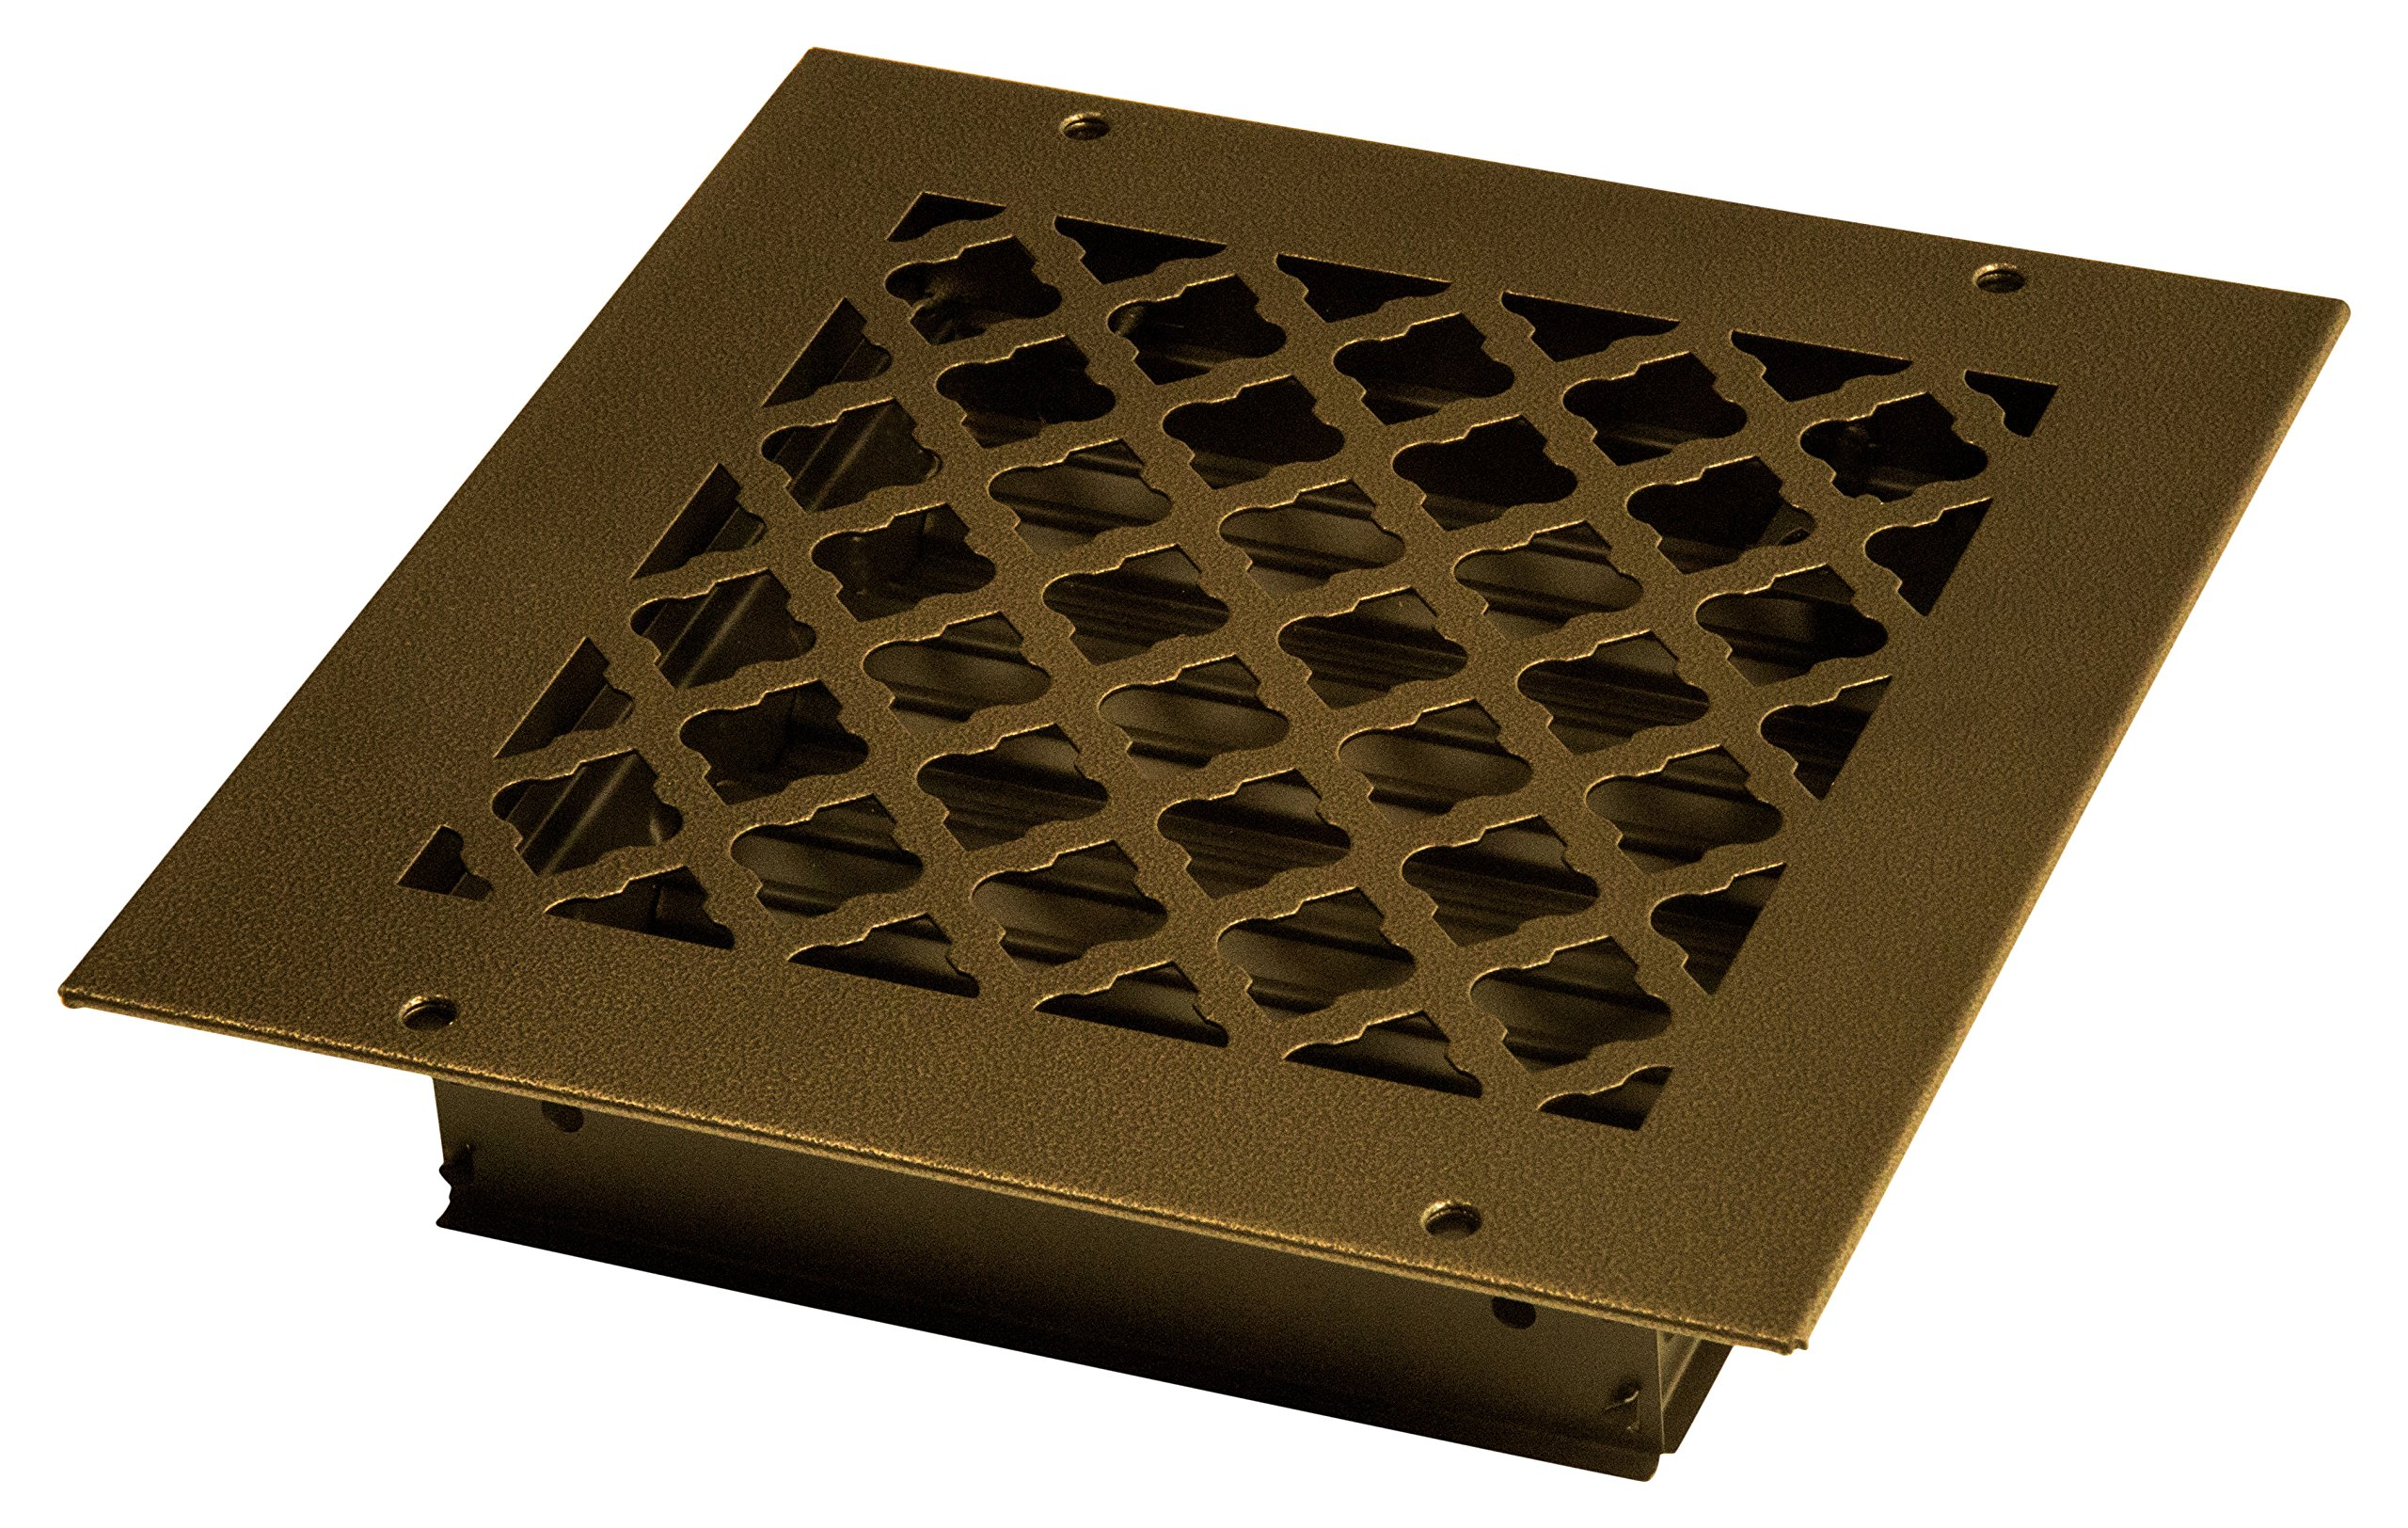 SteelCrest BTU8X8SORBH Bronze Series Designer Wall/Ceiling Vent Cover, with Air-Volume Damper, and Mounting Screws, Oil Rubbed Bronze